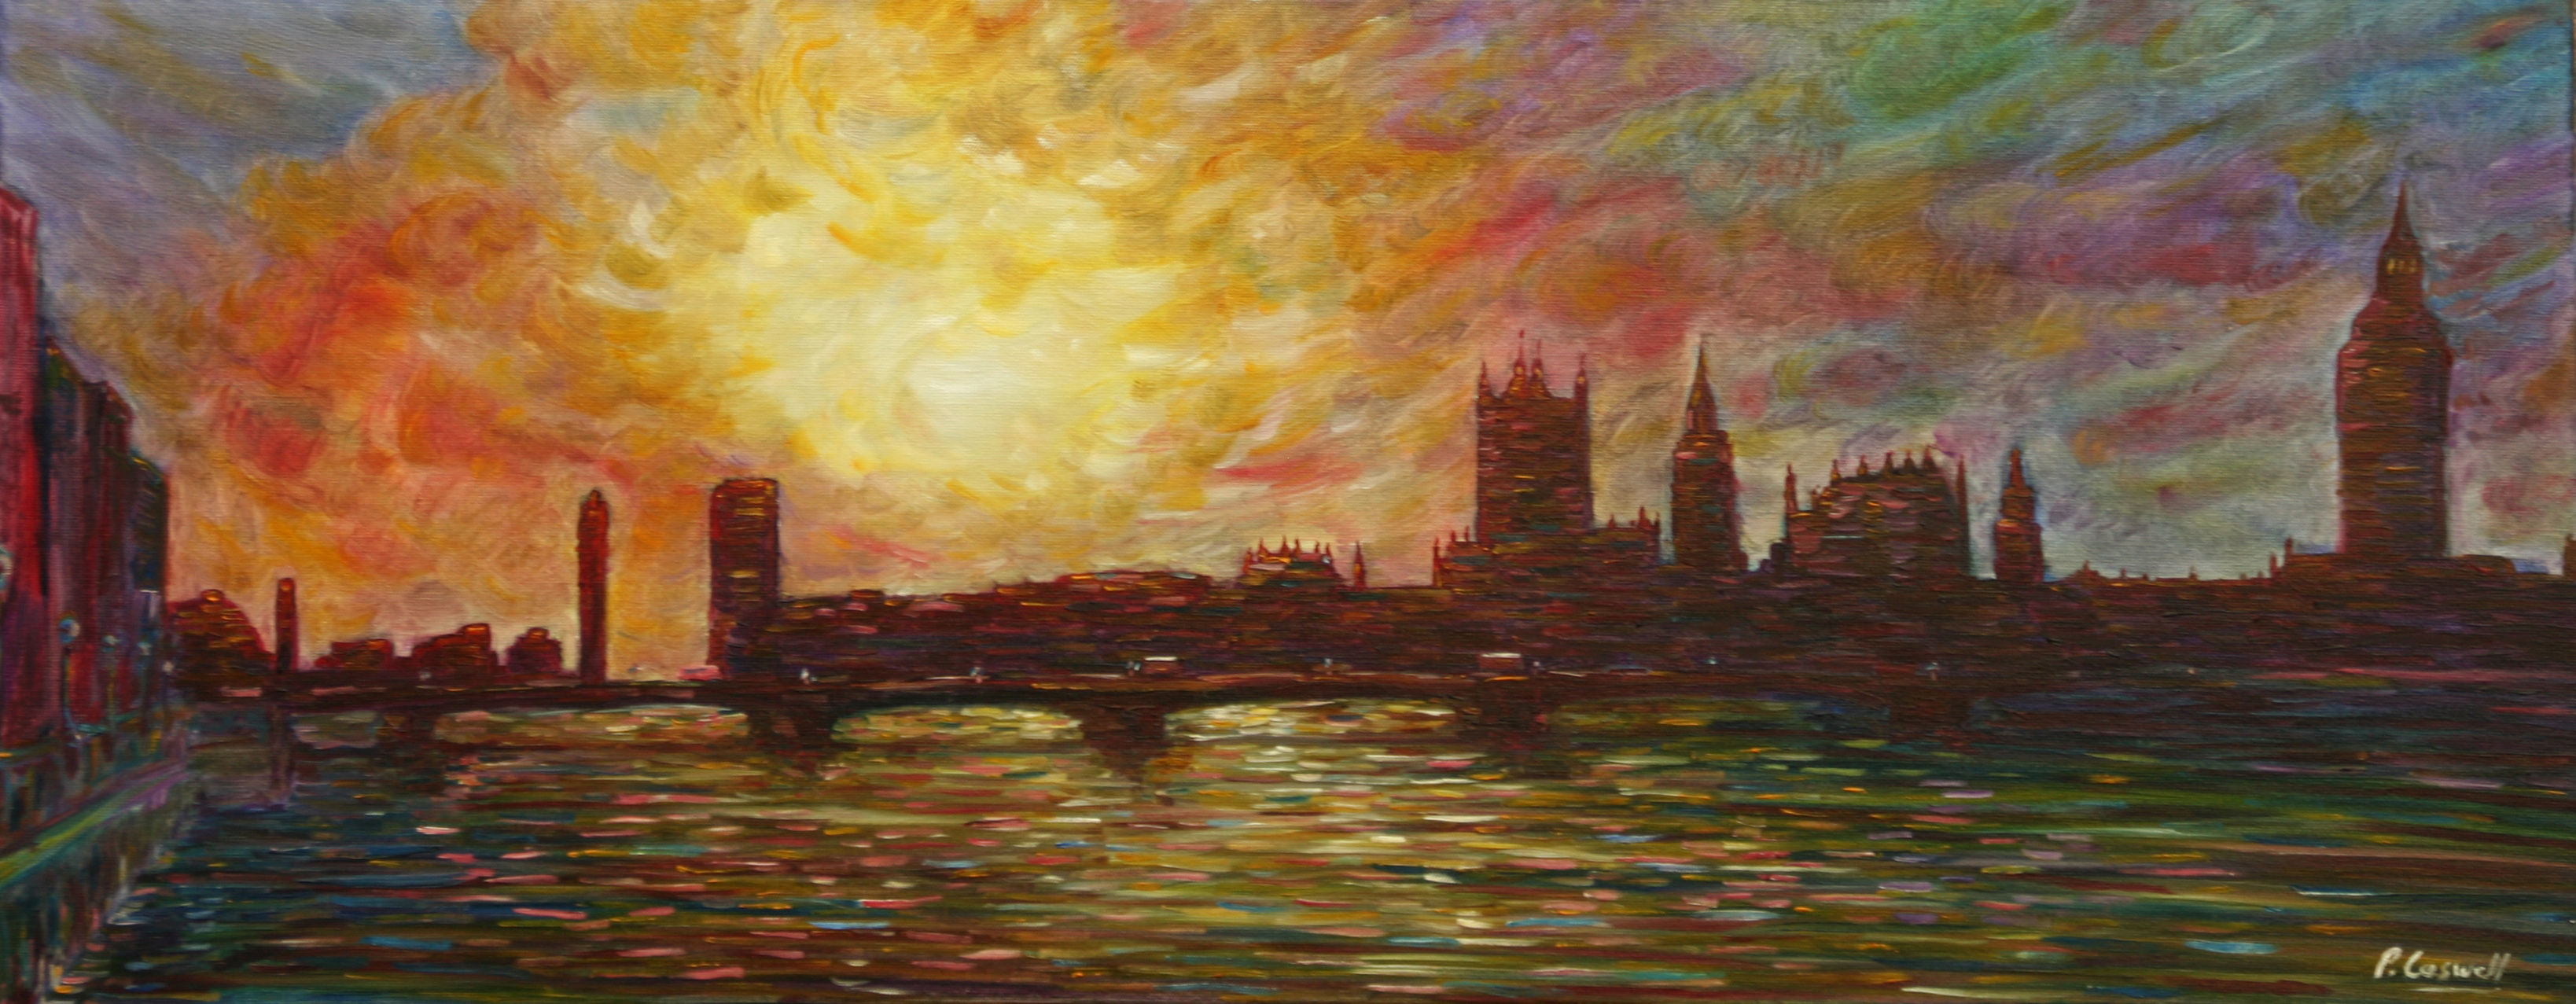 London Paintings For Sale River Thames London Pete Caswell